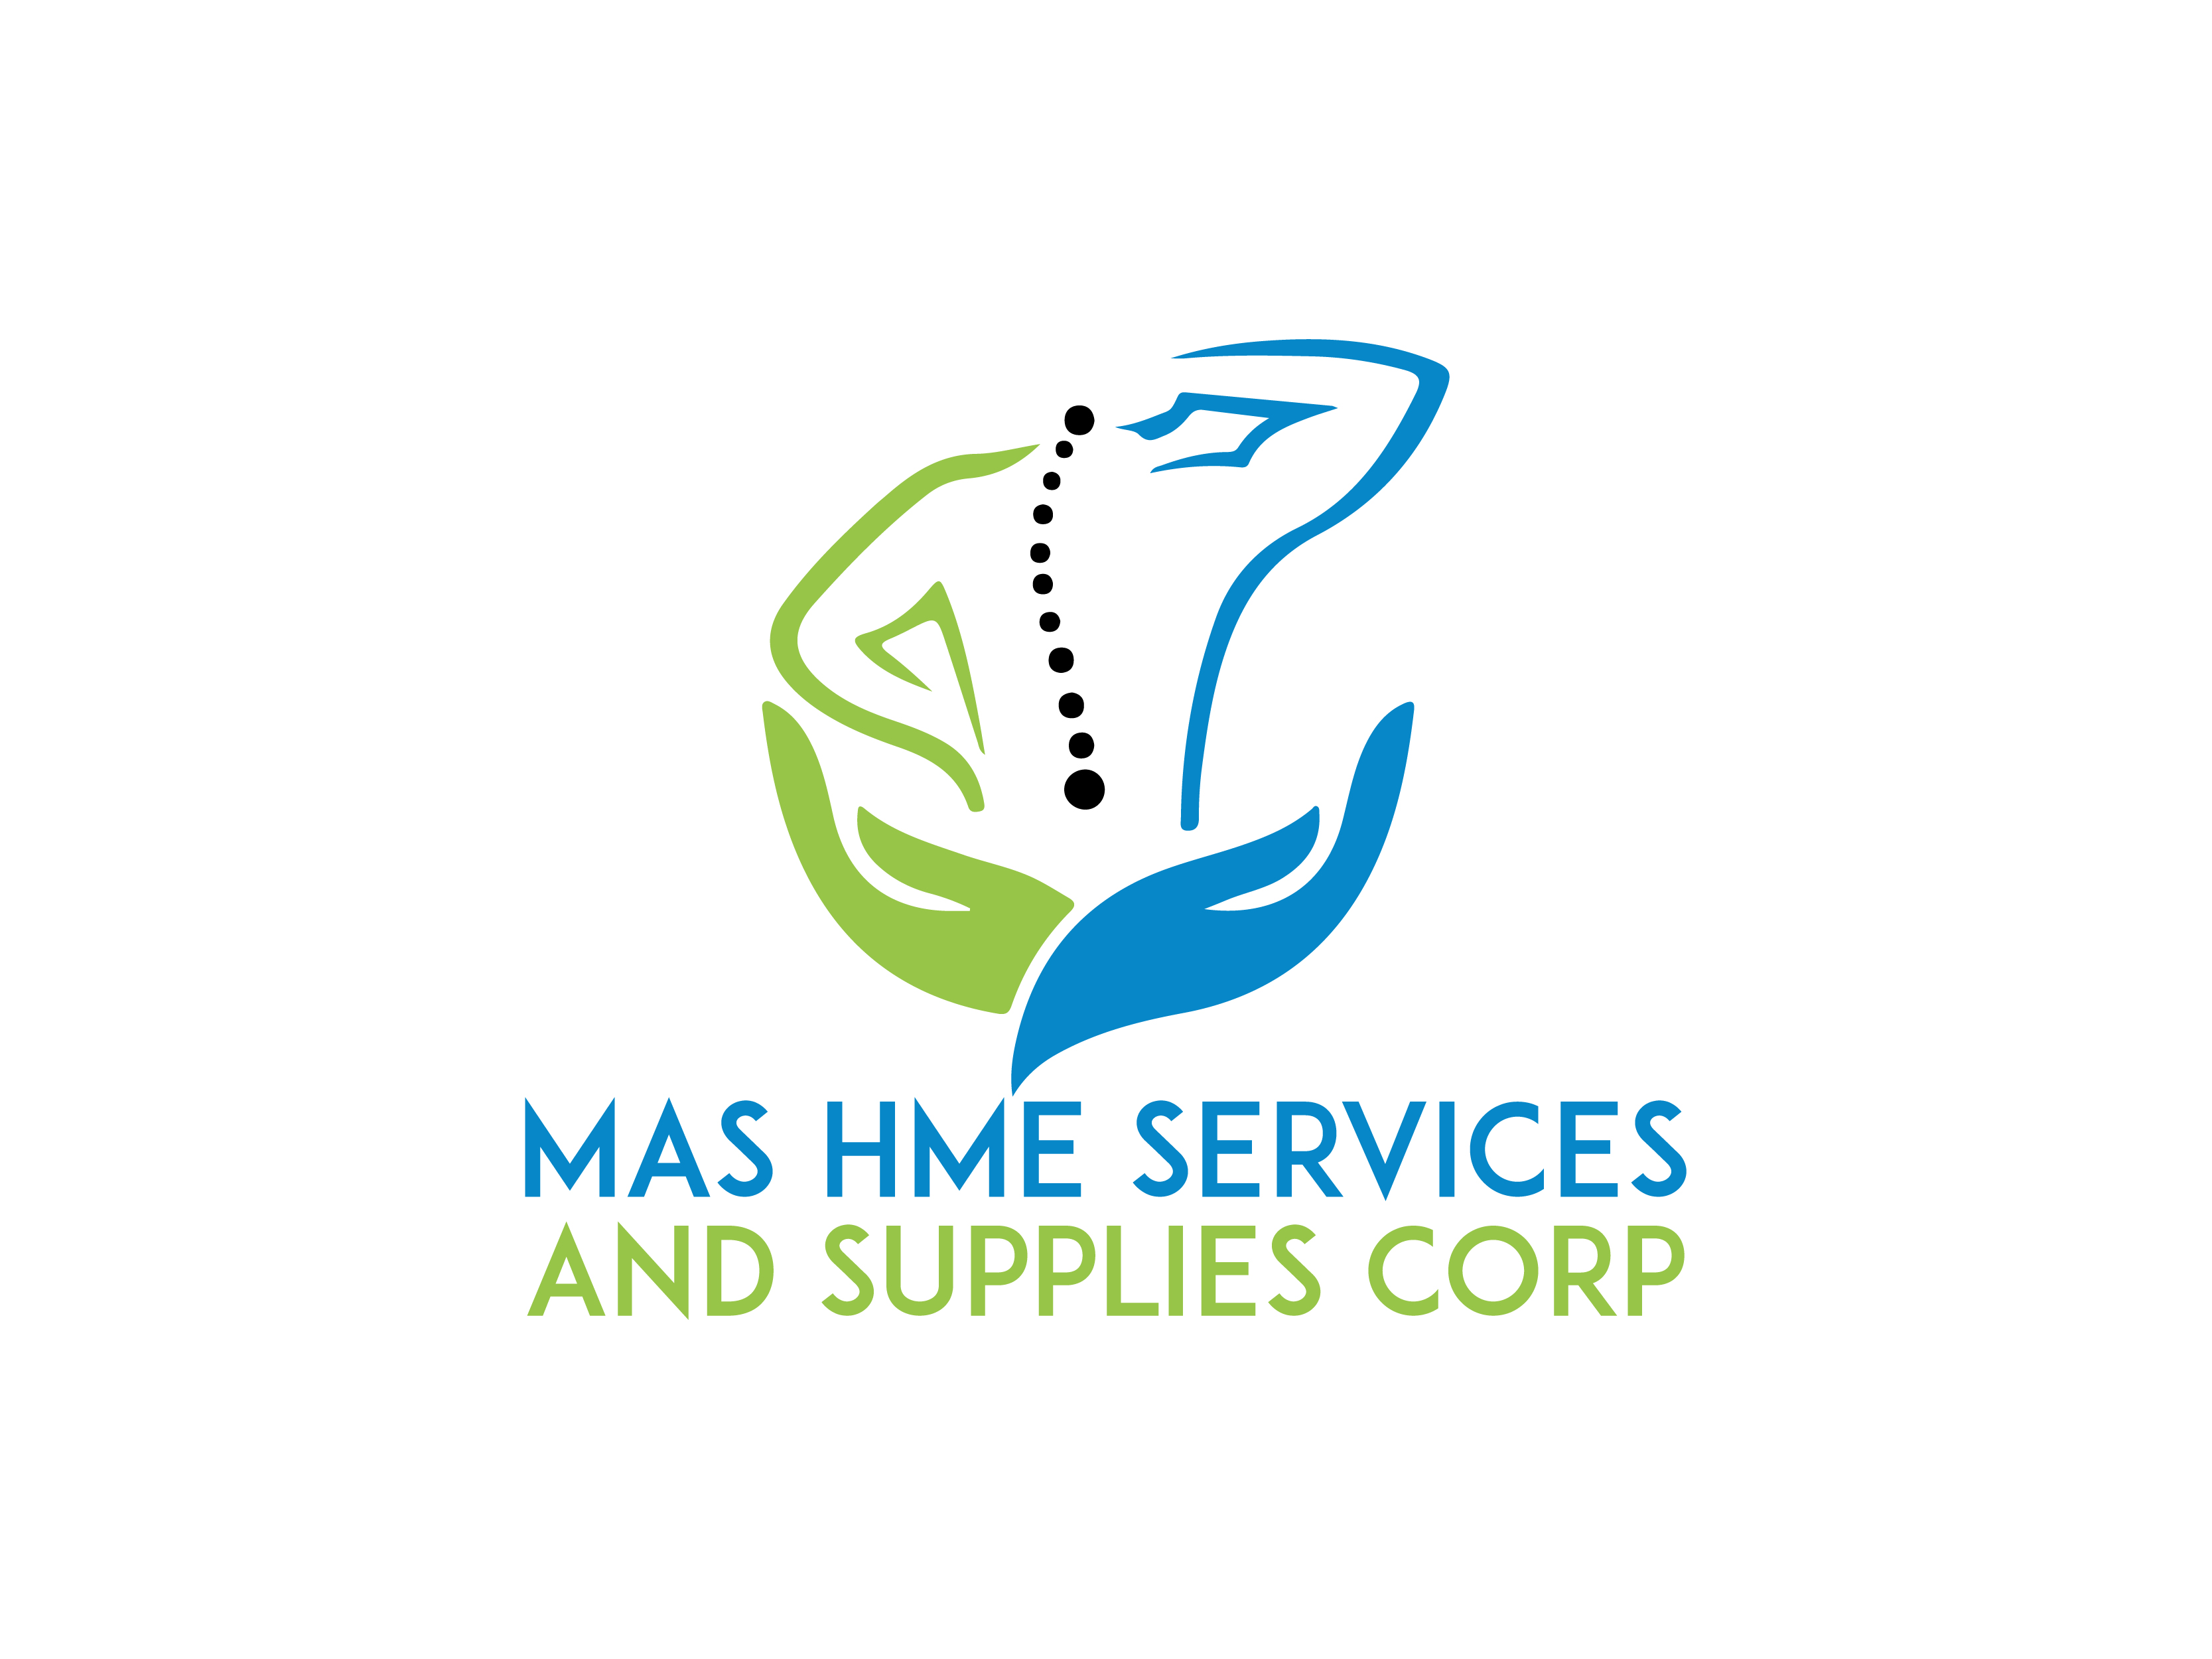 MAS HME SERVICES AND SUPPLIES CORP